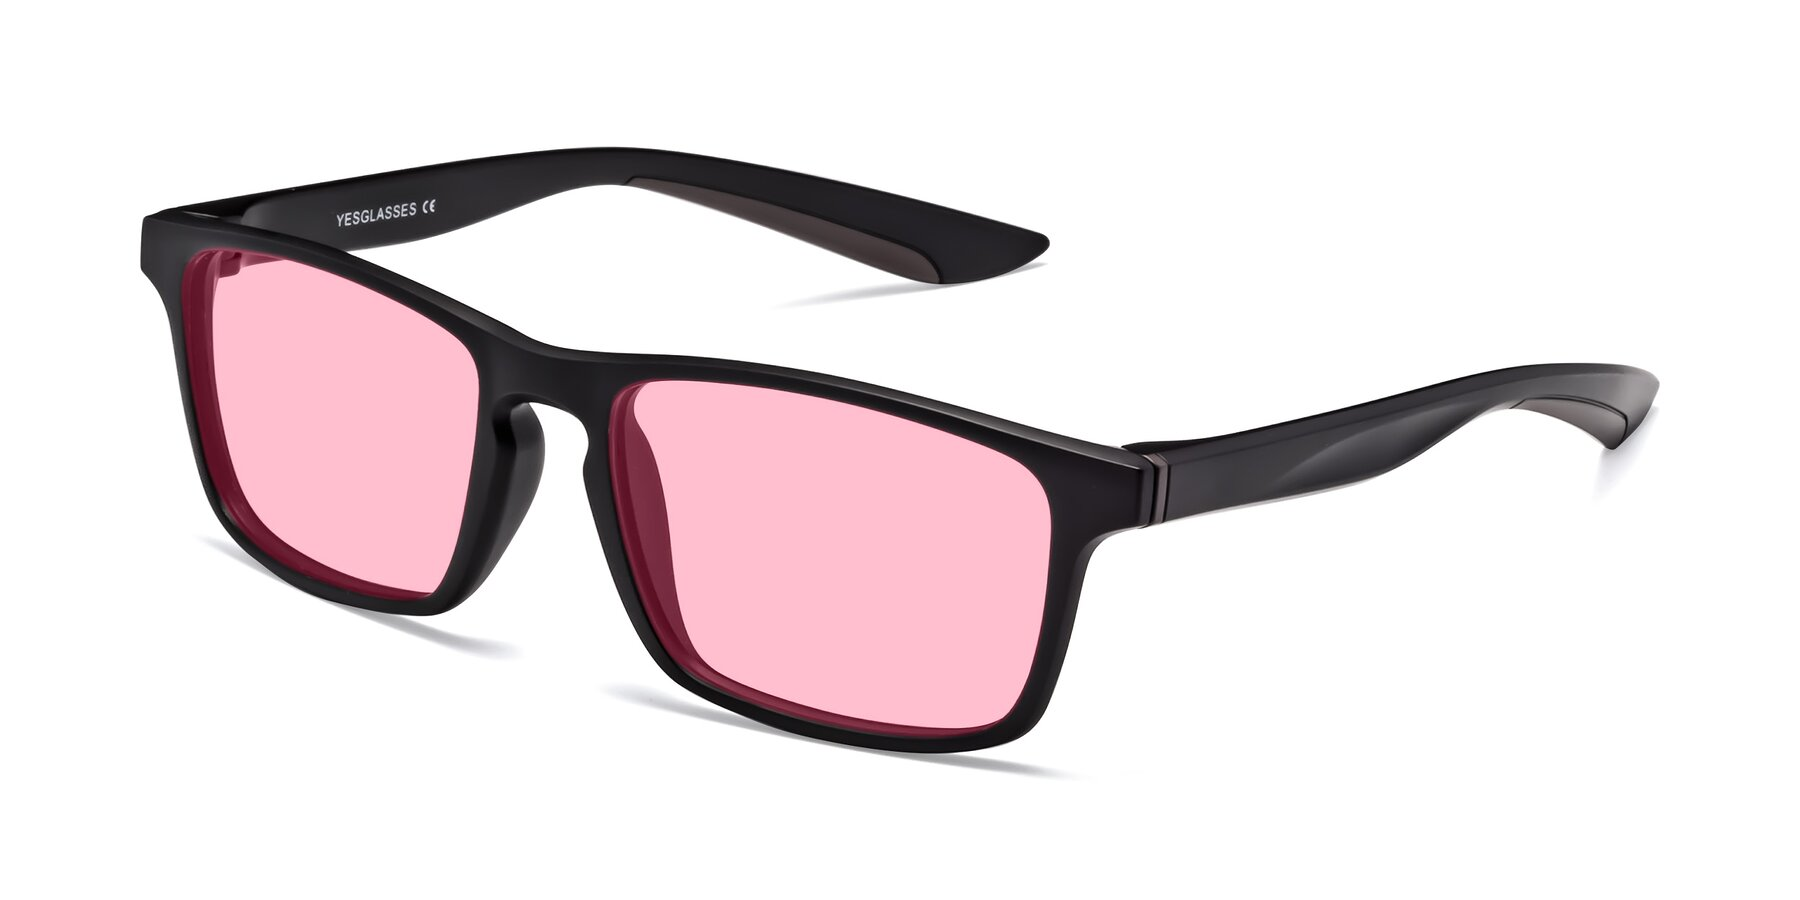 Angle of Passion in Matte Black-Coffee with Medium Pink Tinted Lenses